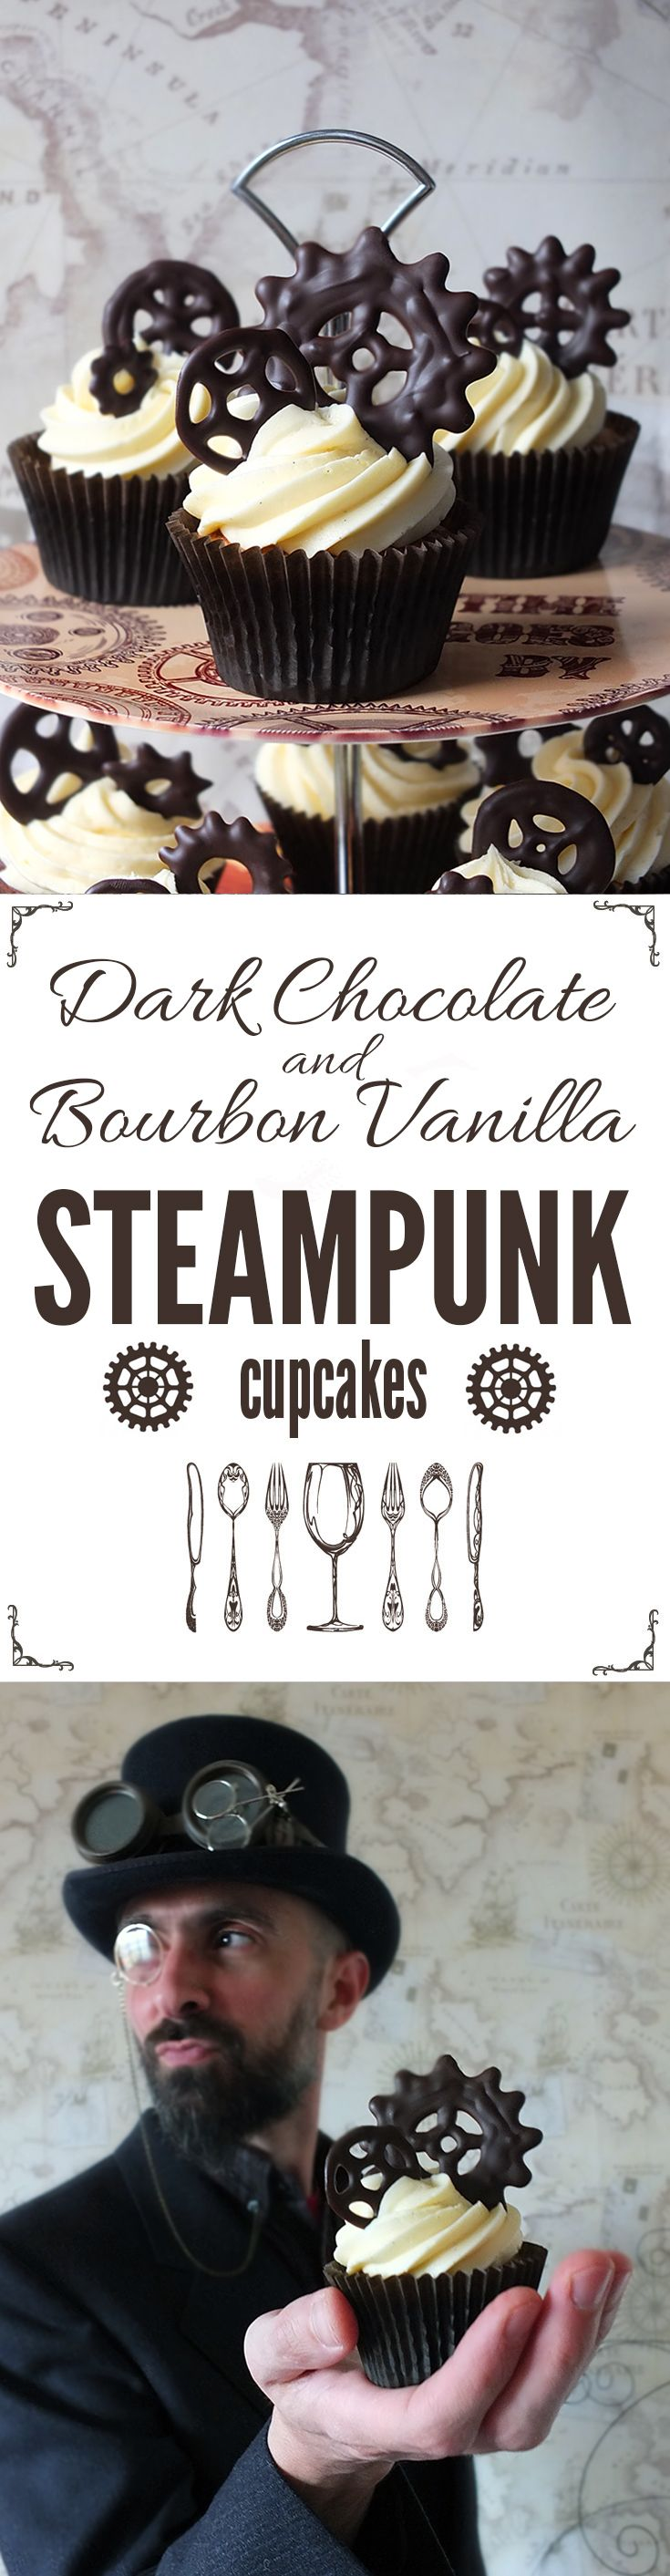 Dark chocolate steampunk cogs and gears are the star of these chocolate and bourbon vanilla cupcakes!